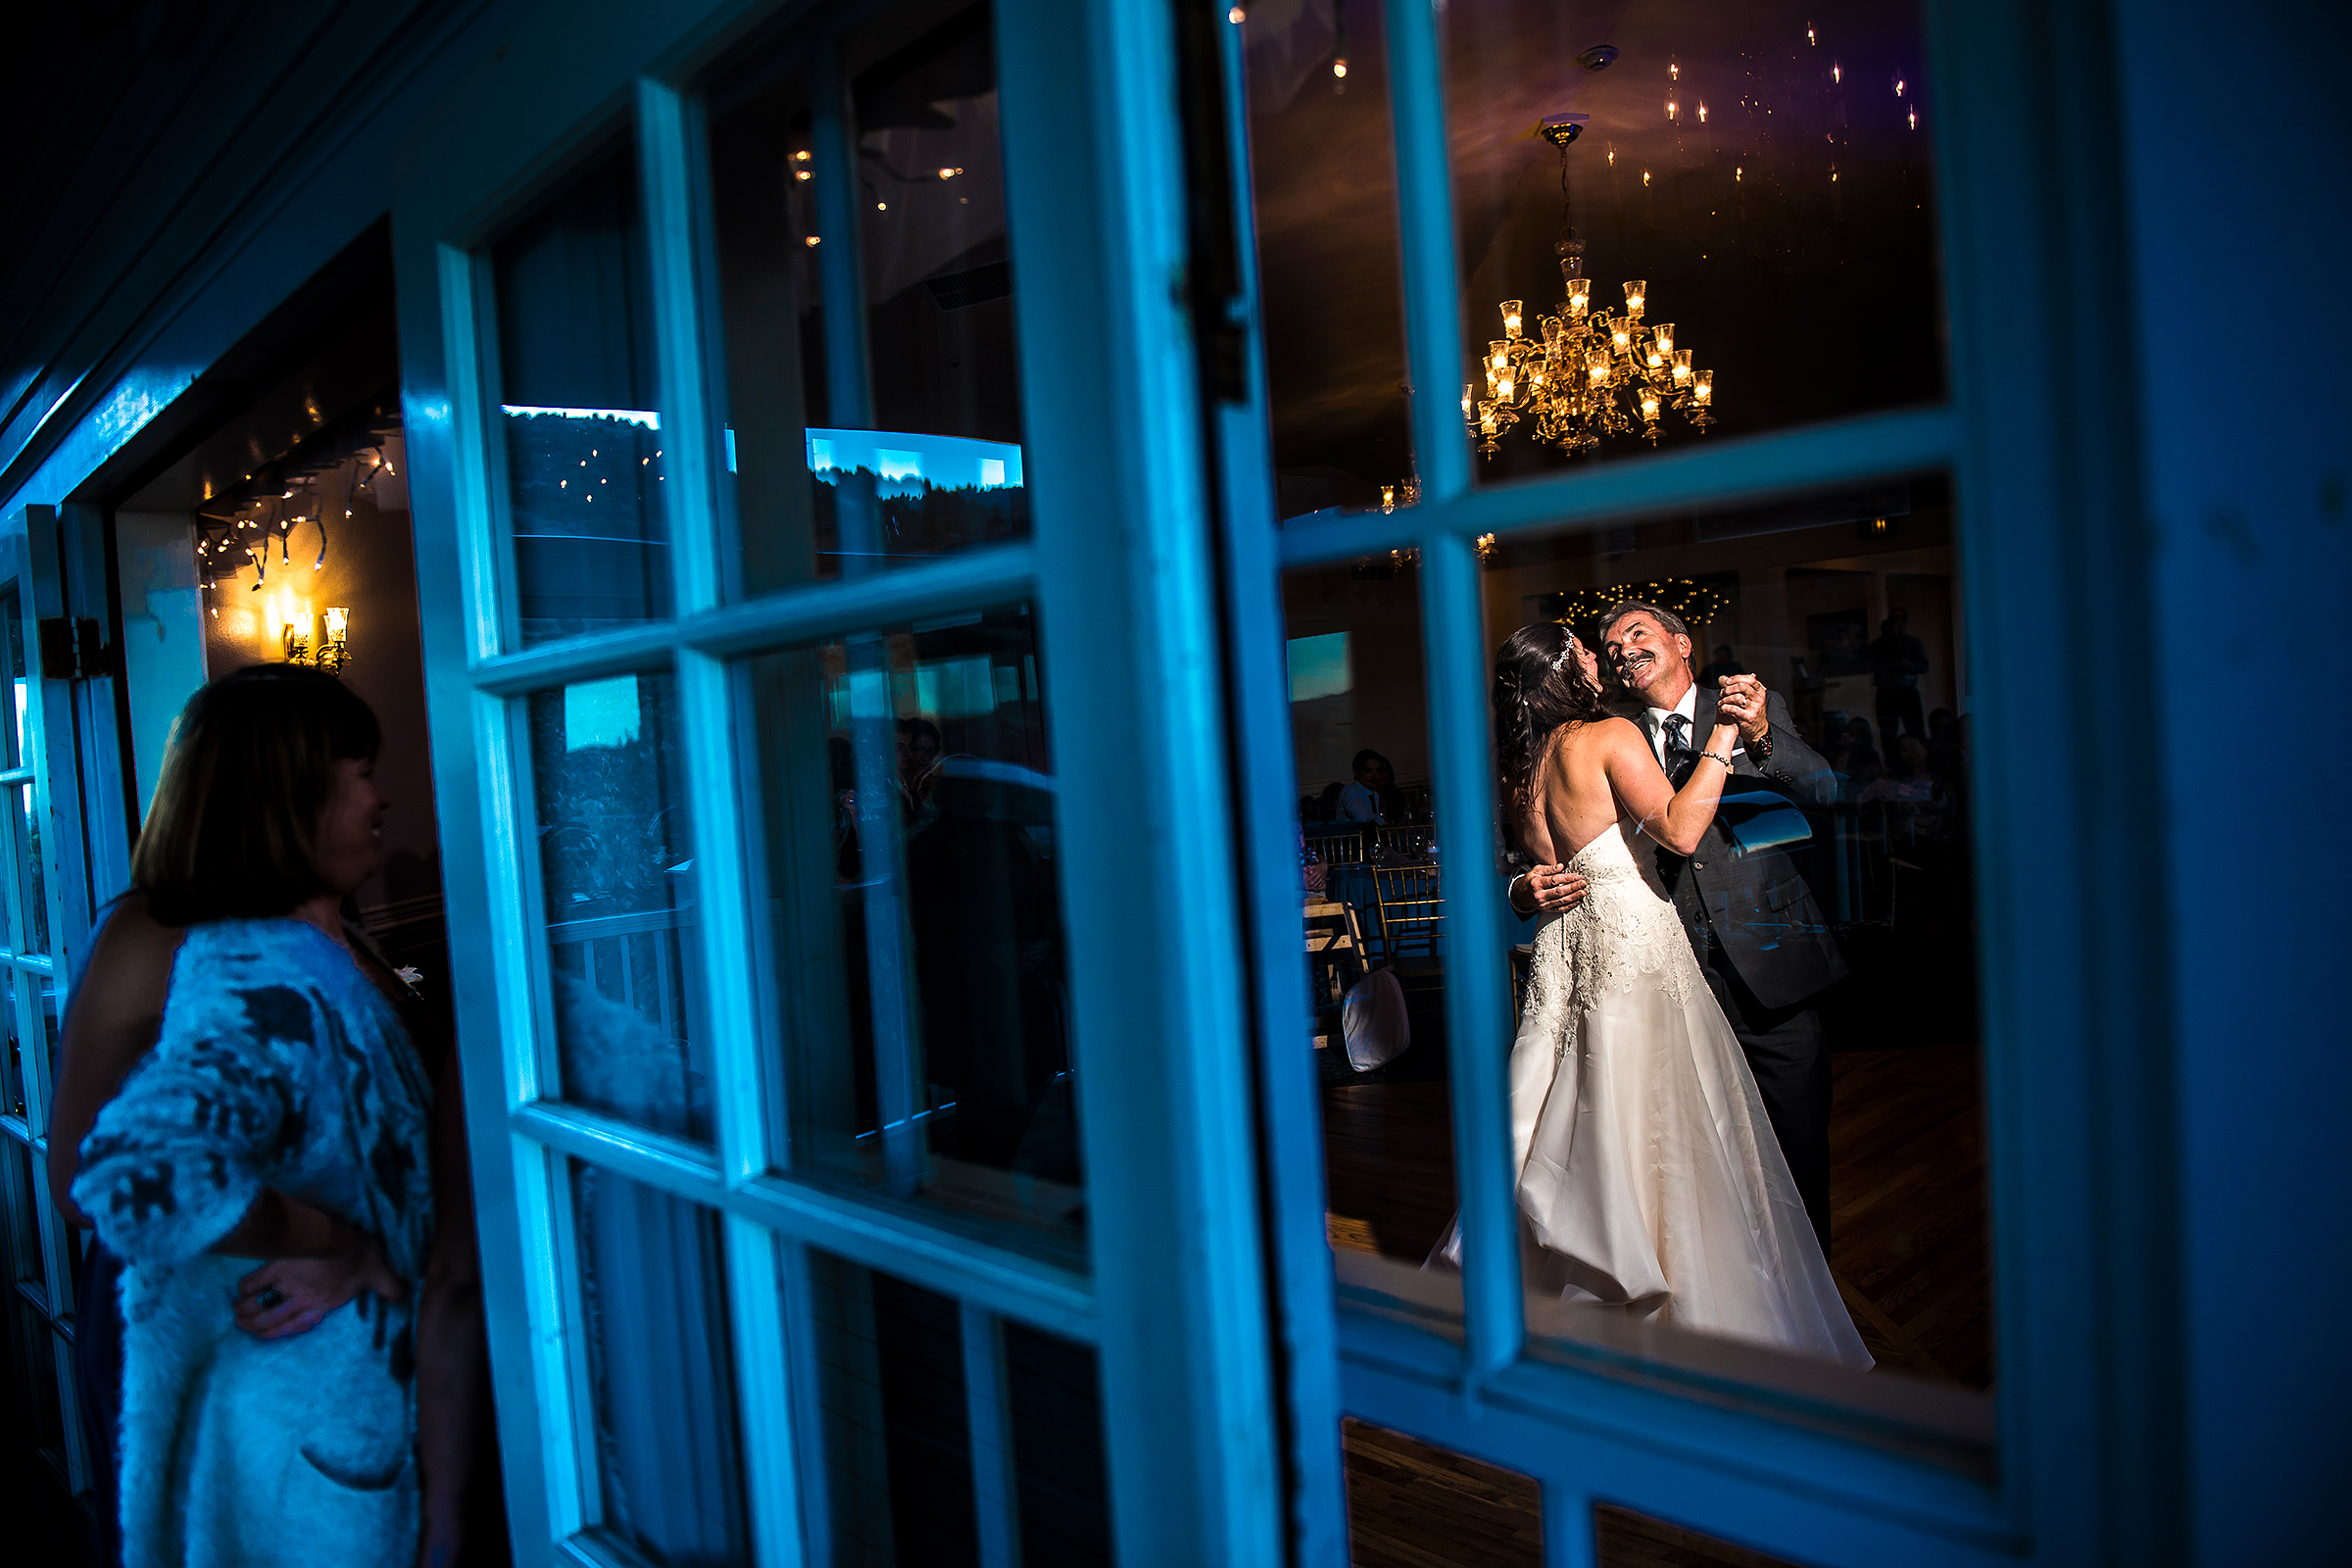 Creative composition father daughter dance through window - photo by J La Plante Photo